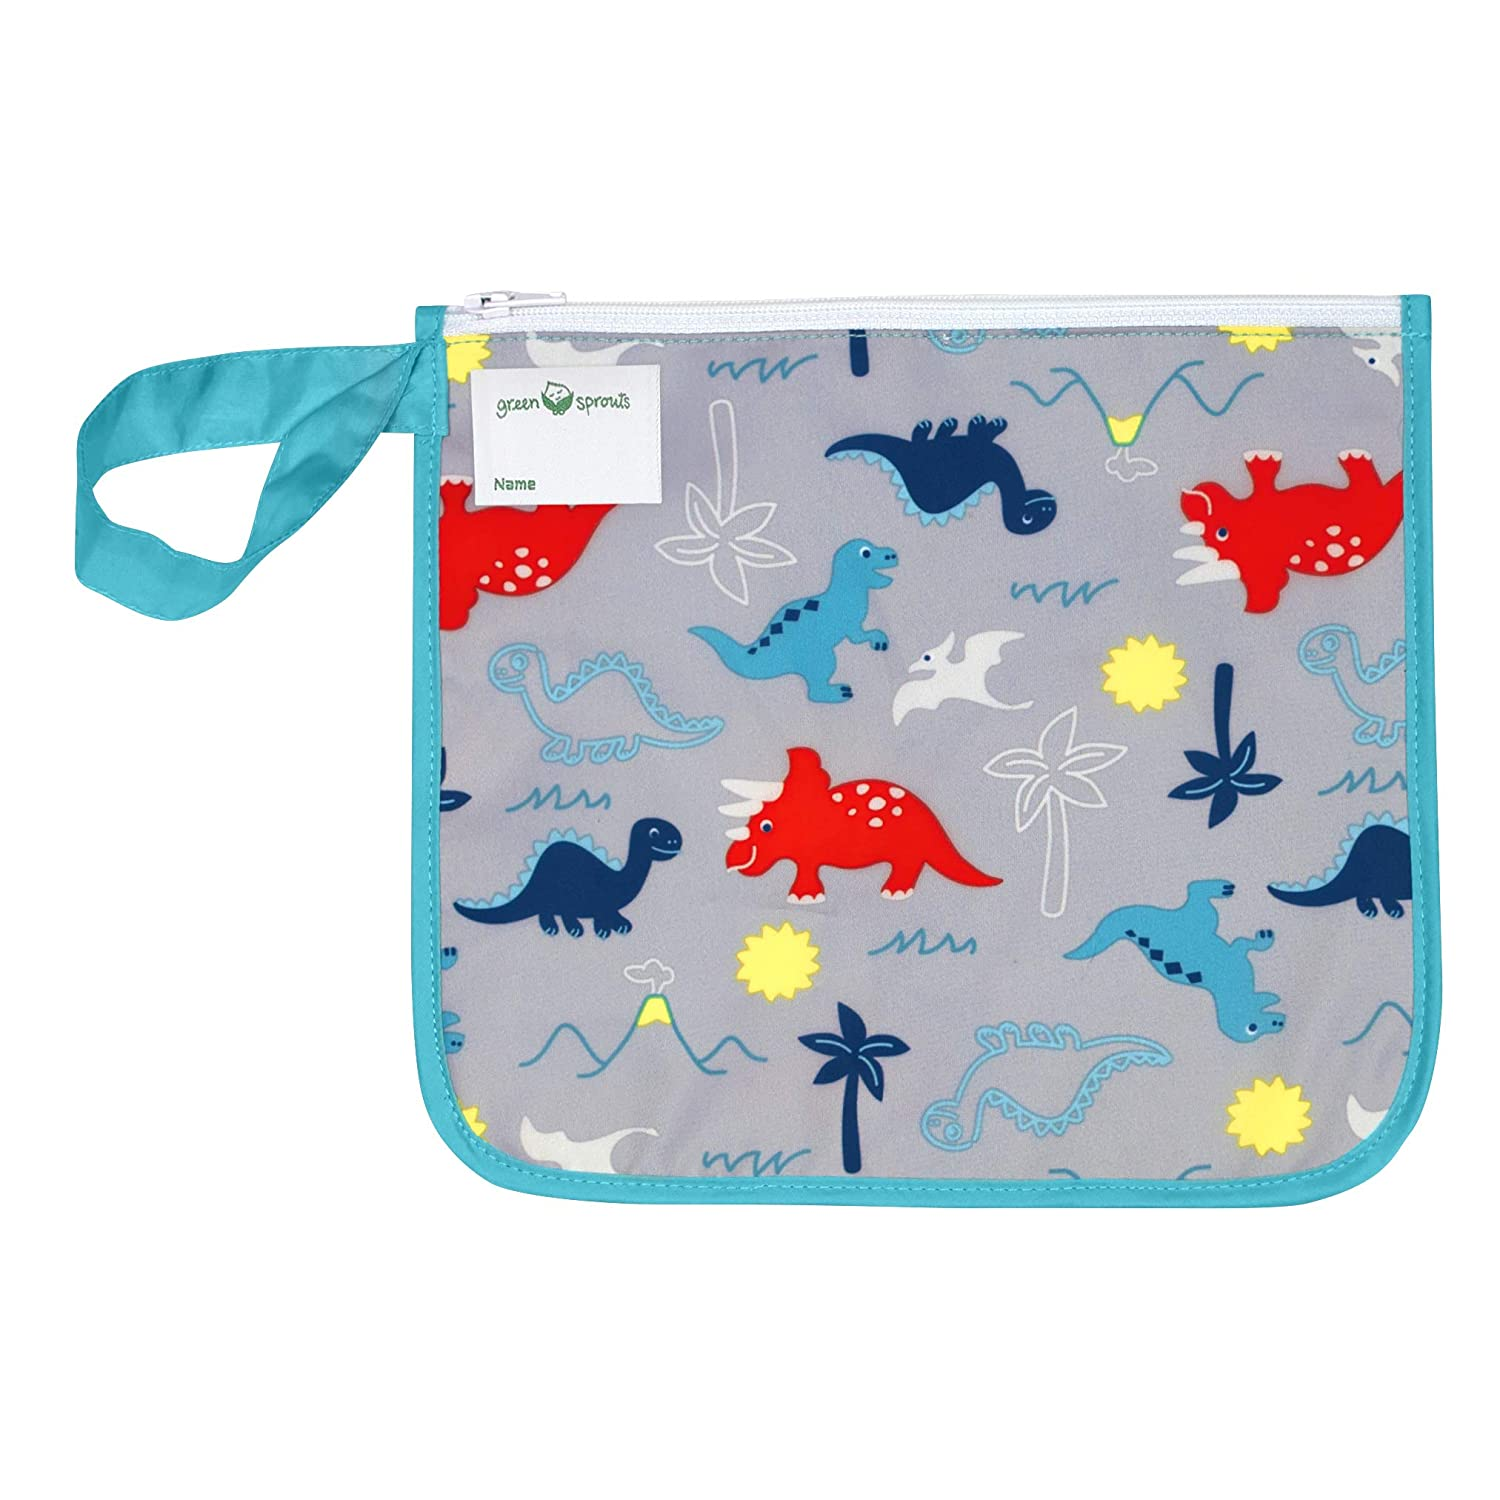 green sprouts Insulated Reusable Snack Bag   Keeps Food Fresh   Insulated Layer, Food-Safe, Waterproof & Easy-Clean Material, Aqua Dinosaurs